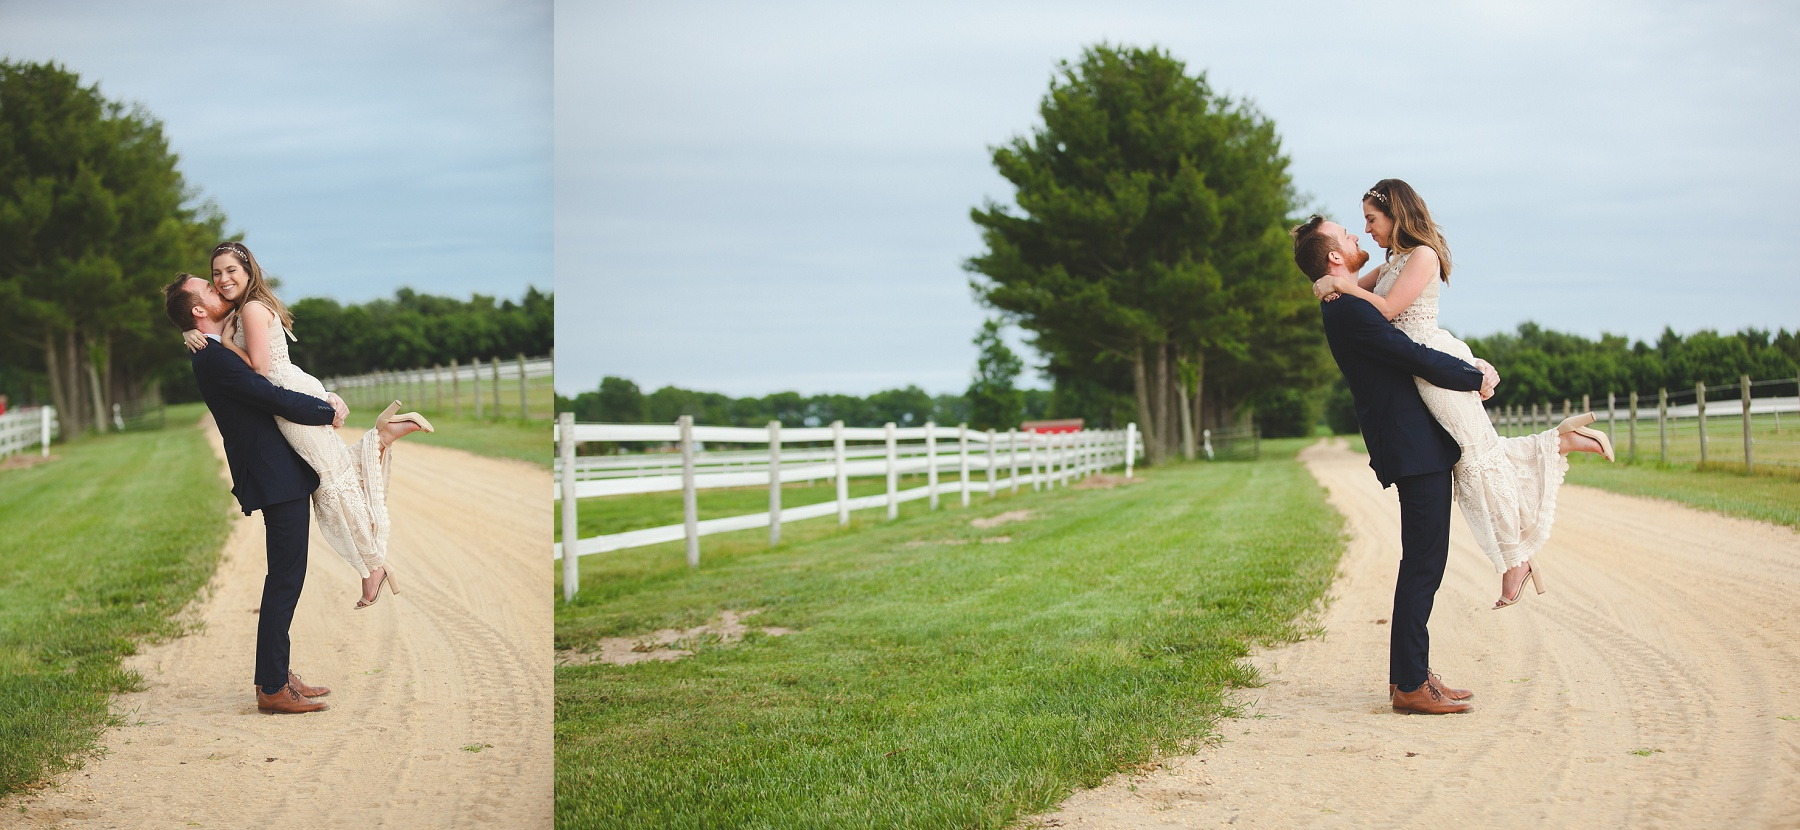 Family Farm Wedding in South Jersey Photography - Rustic Barn NJ - Millville, Vineland, Pittsgrove, Cape May, Ocean City